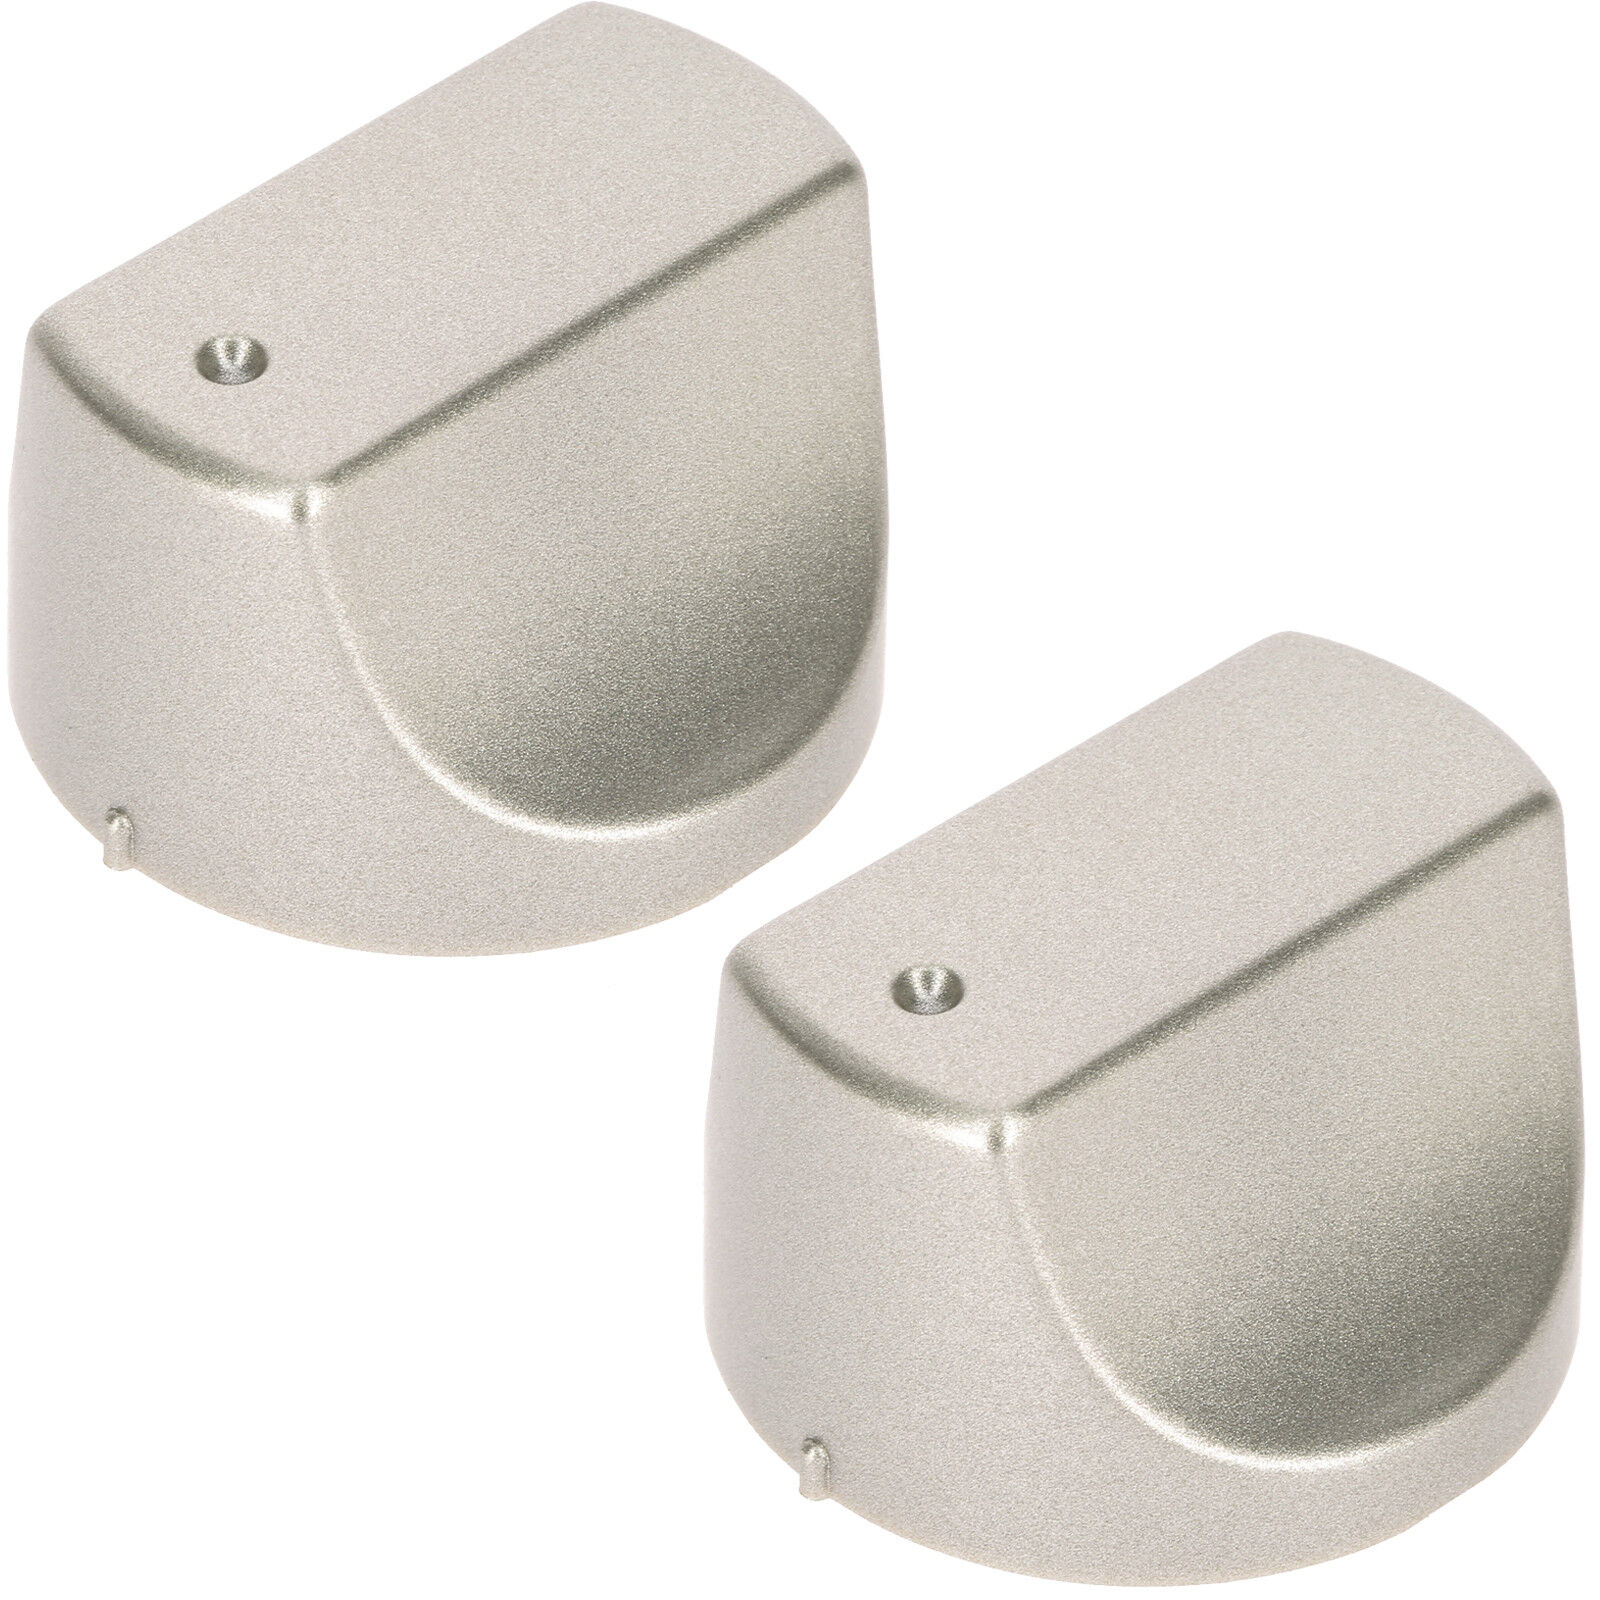 5 Silver Control Switch Knobs for HOTPOINT Hot-Ari ix Oven DH53XS DH93CX DH93CXS